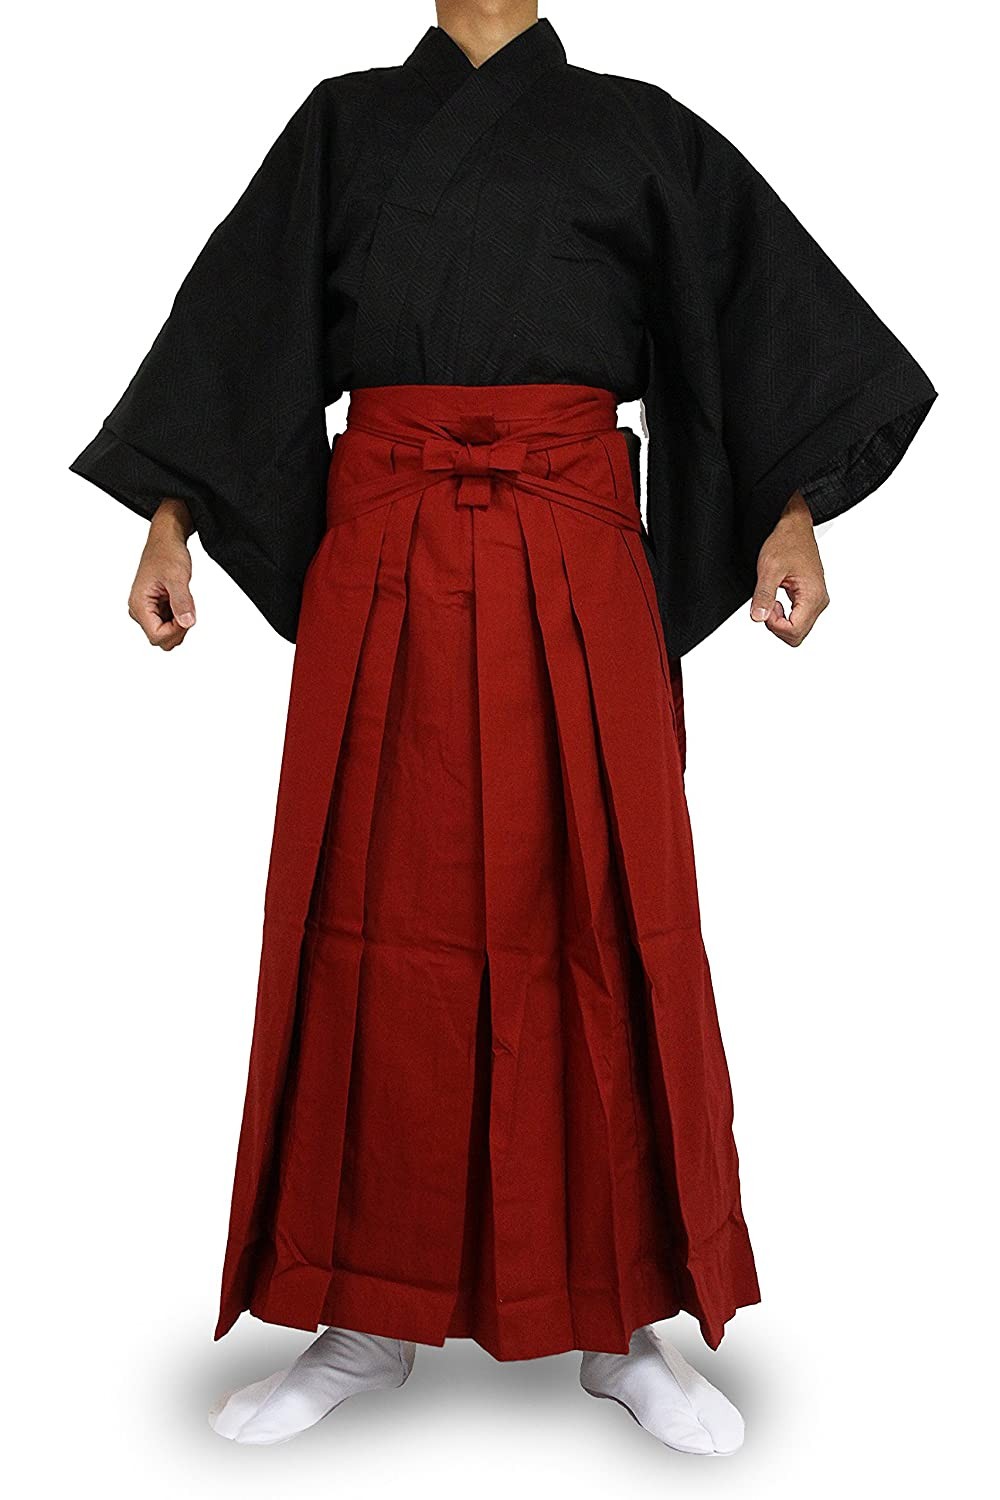 1BKRed Edoten Japanese Samurai Hakama Uniform